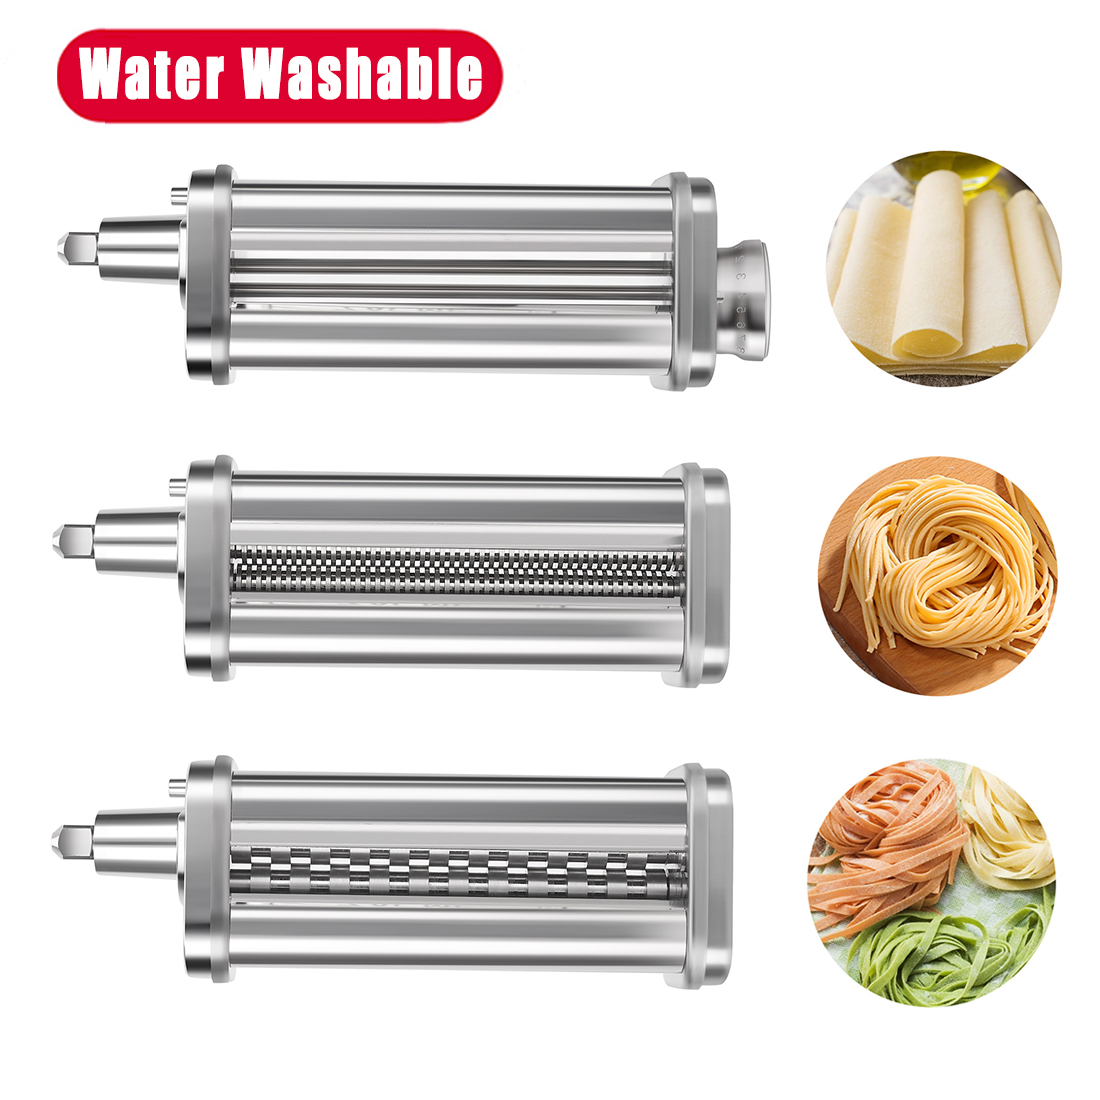 Pasta Maker Attachment 3-in-1 Set for KitchenAid Stand Mixers, Pasta Roller & Cutter Attachments Stainless Steel Included Pasta Sheet Roller, Spaghetti Cutter, Fettuccine Cutter